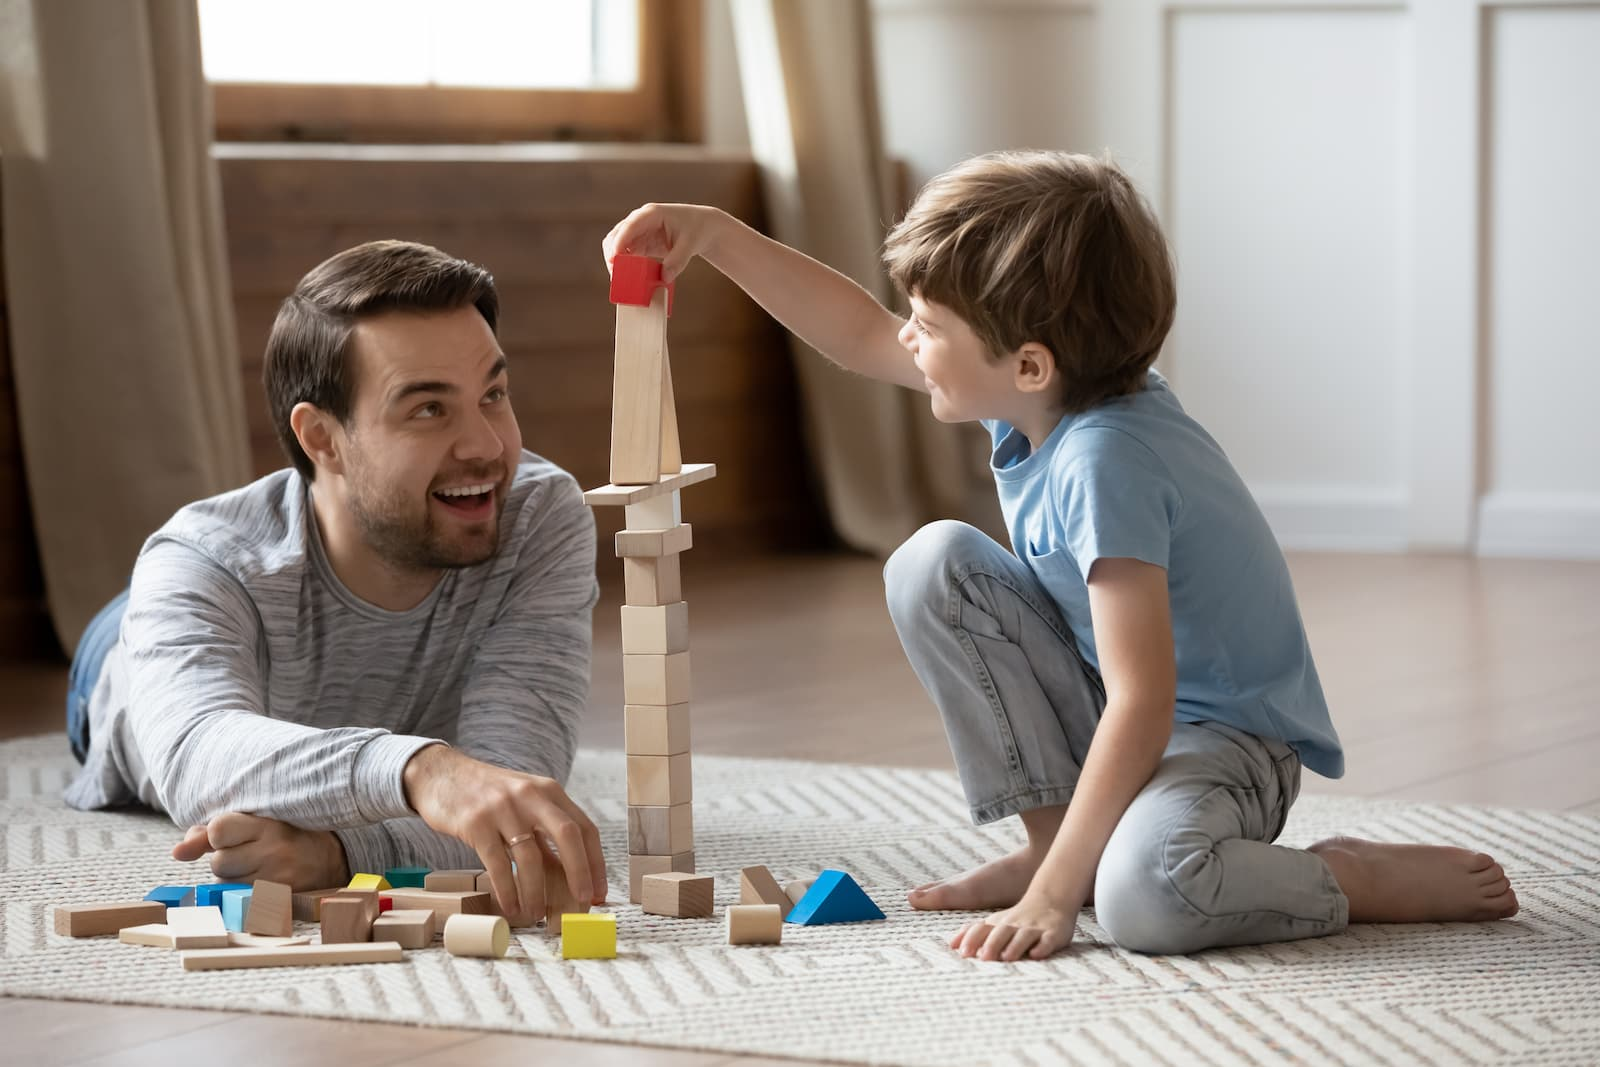 father and son playing together with wooden blocks building pyramids